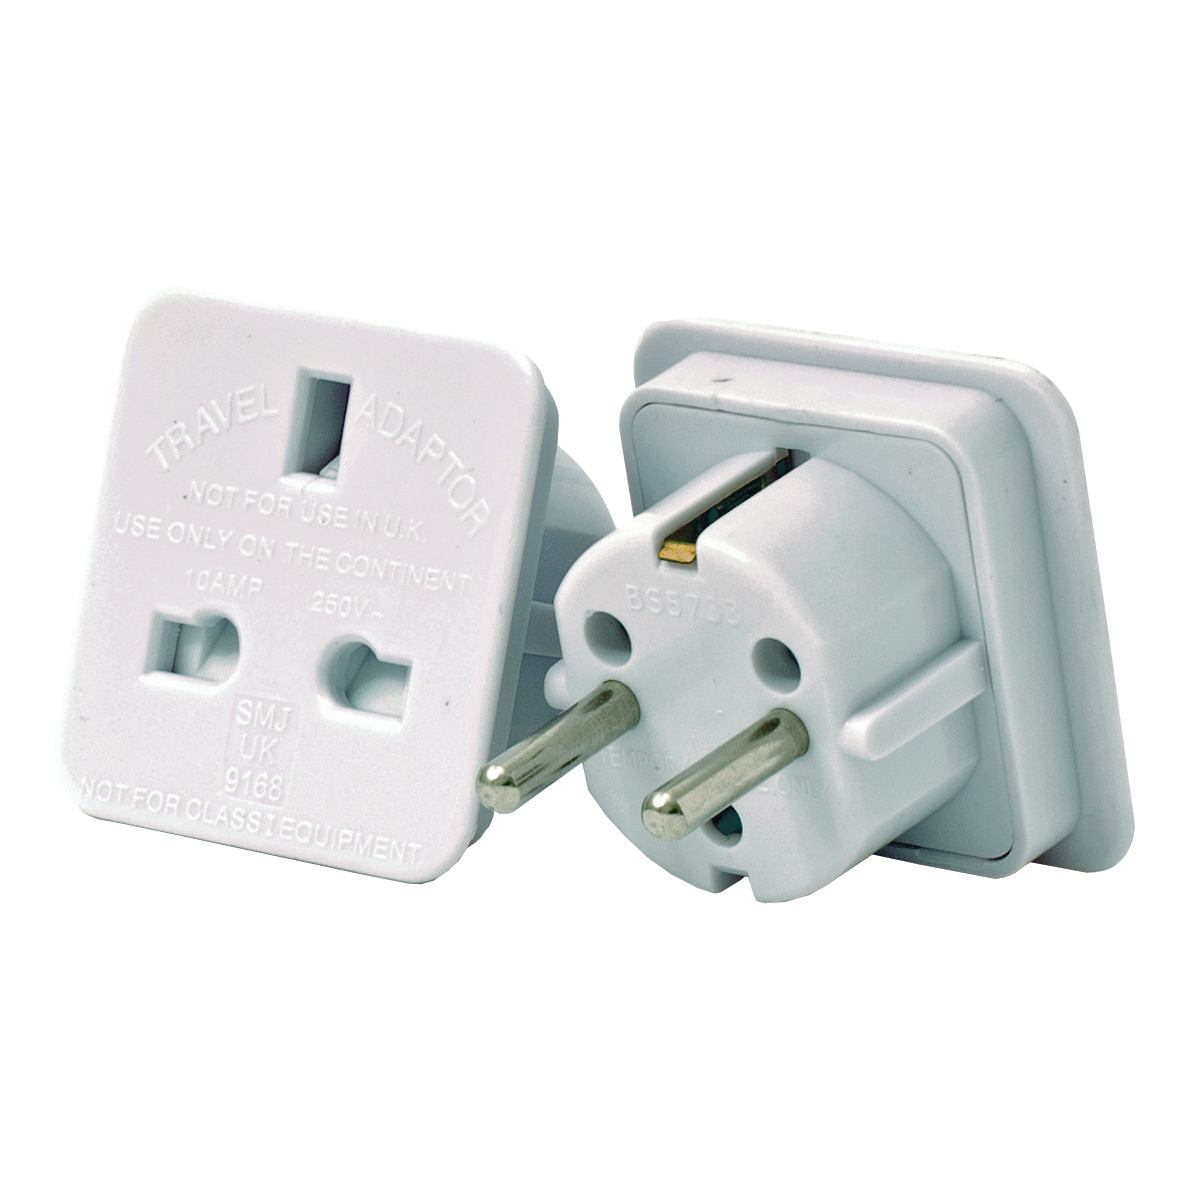 UK to European Travel Adaptor Pack 2